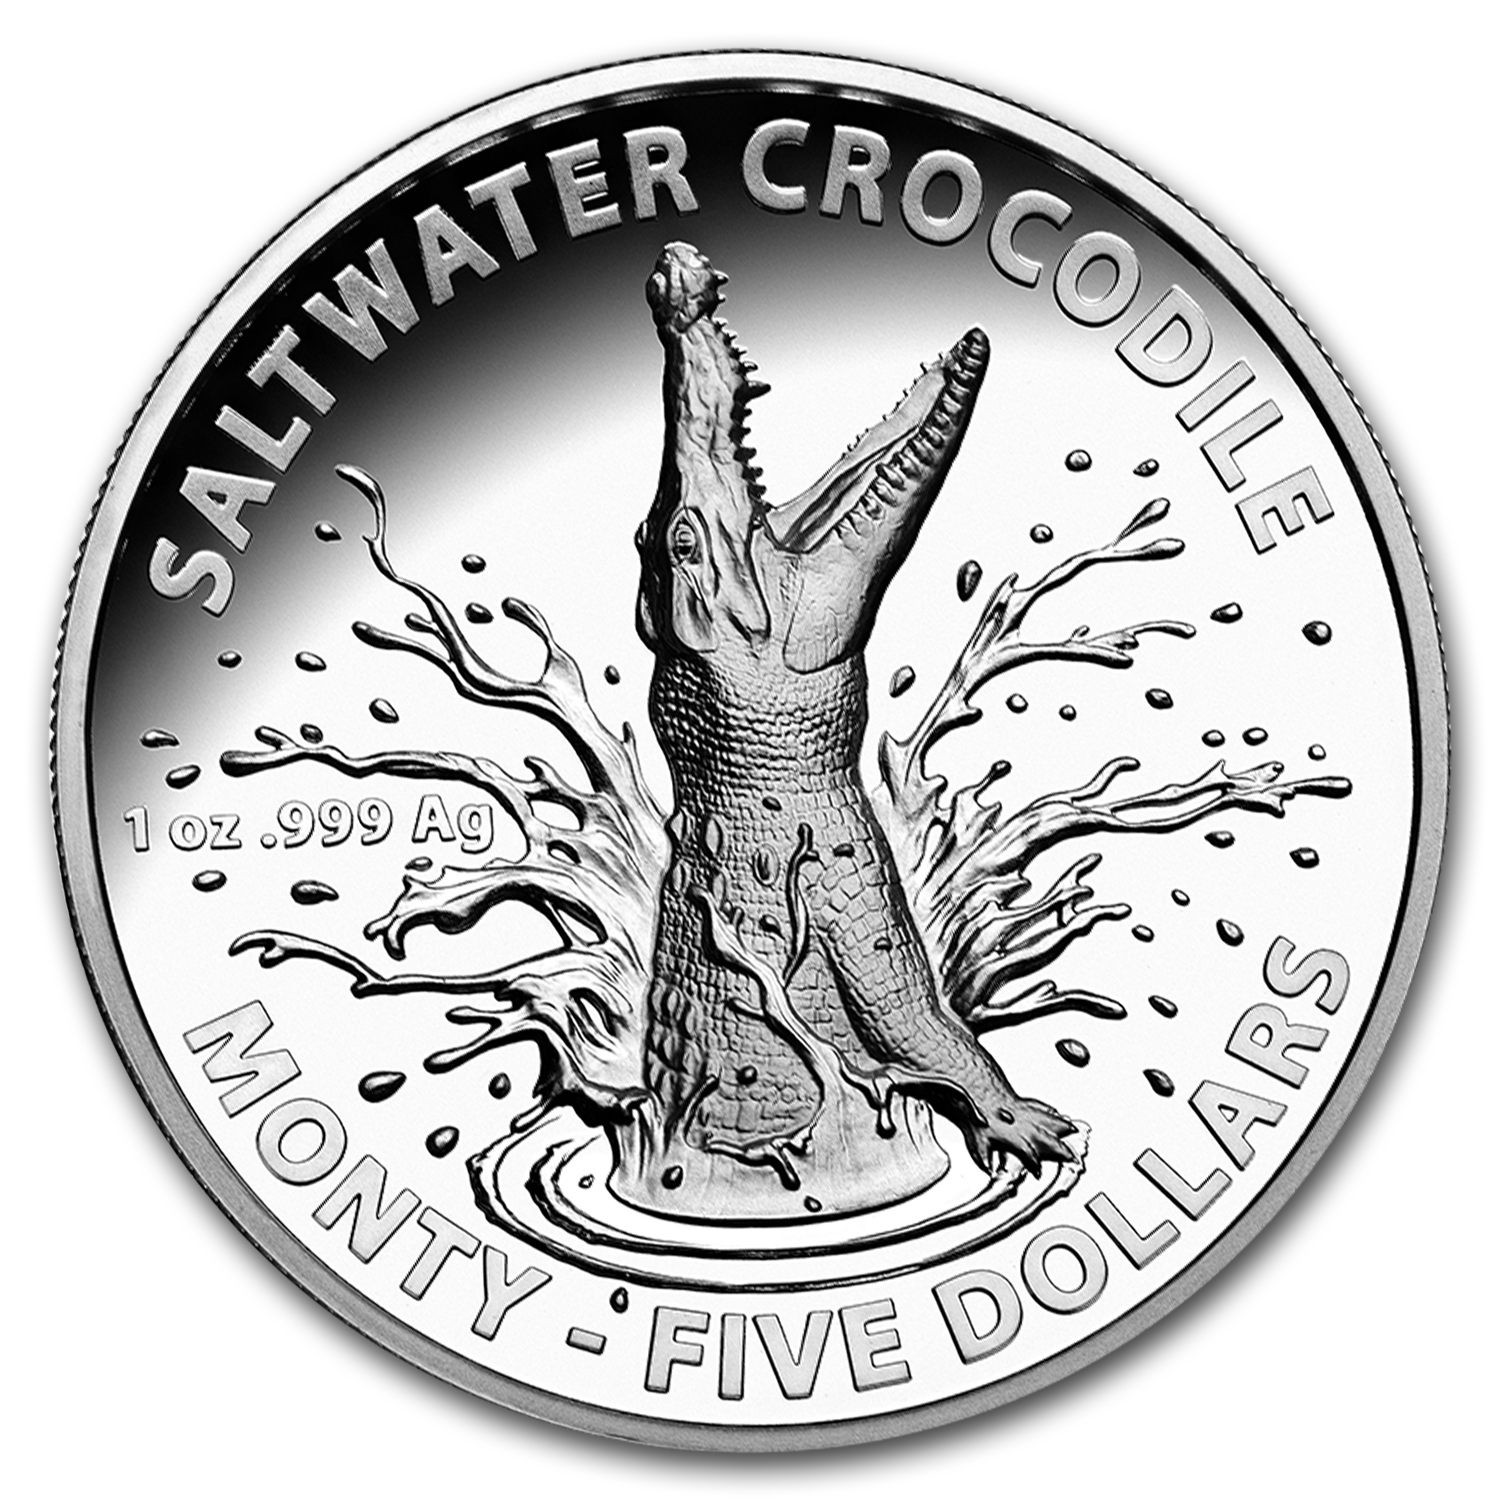 2016 Australia 1 oz Silver High Relief Salt Water Croc Monty